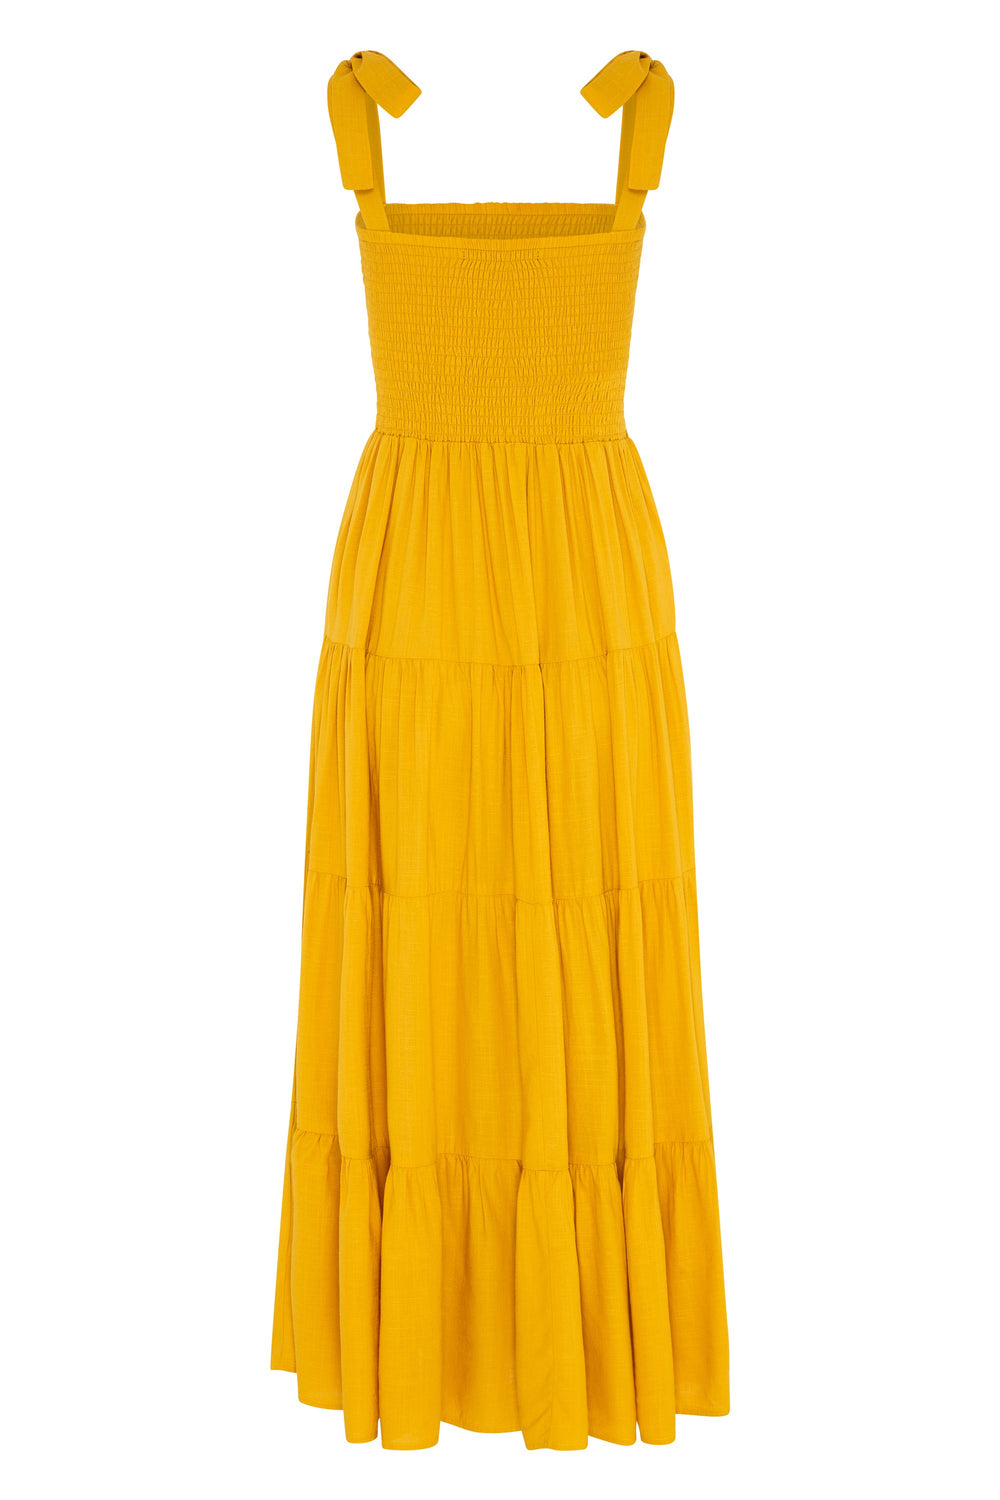 Savannah Tie Dress In Mustard